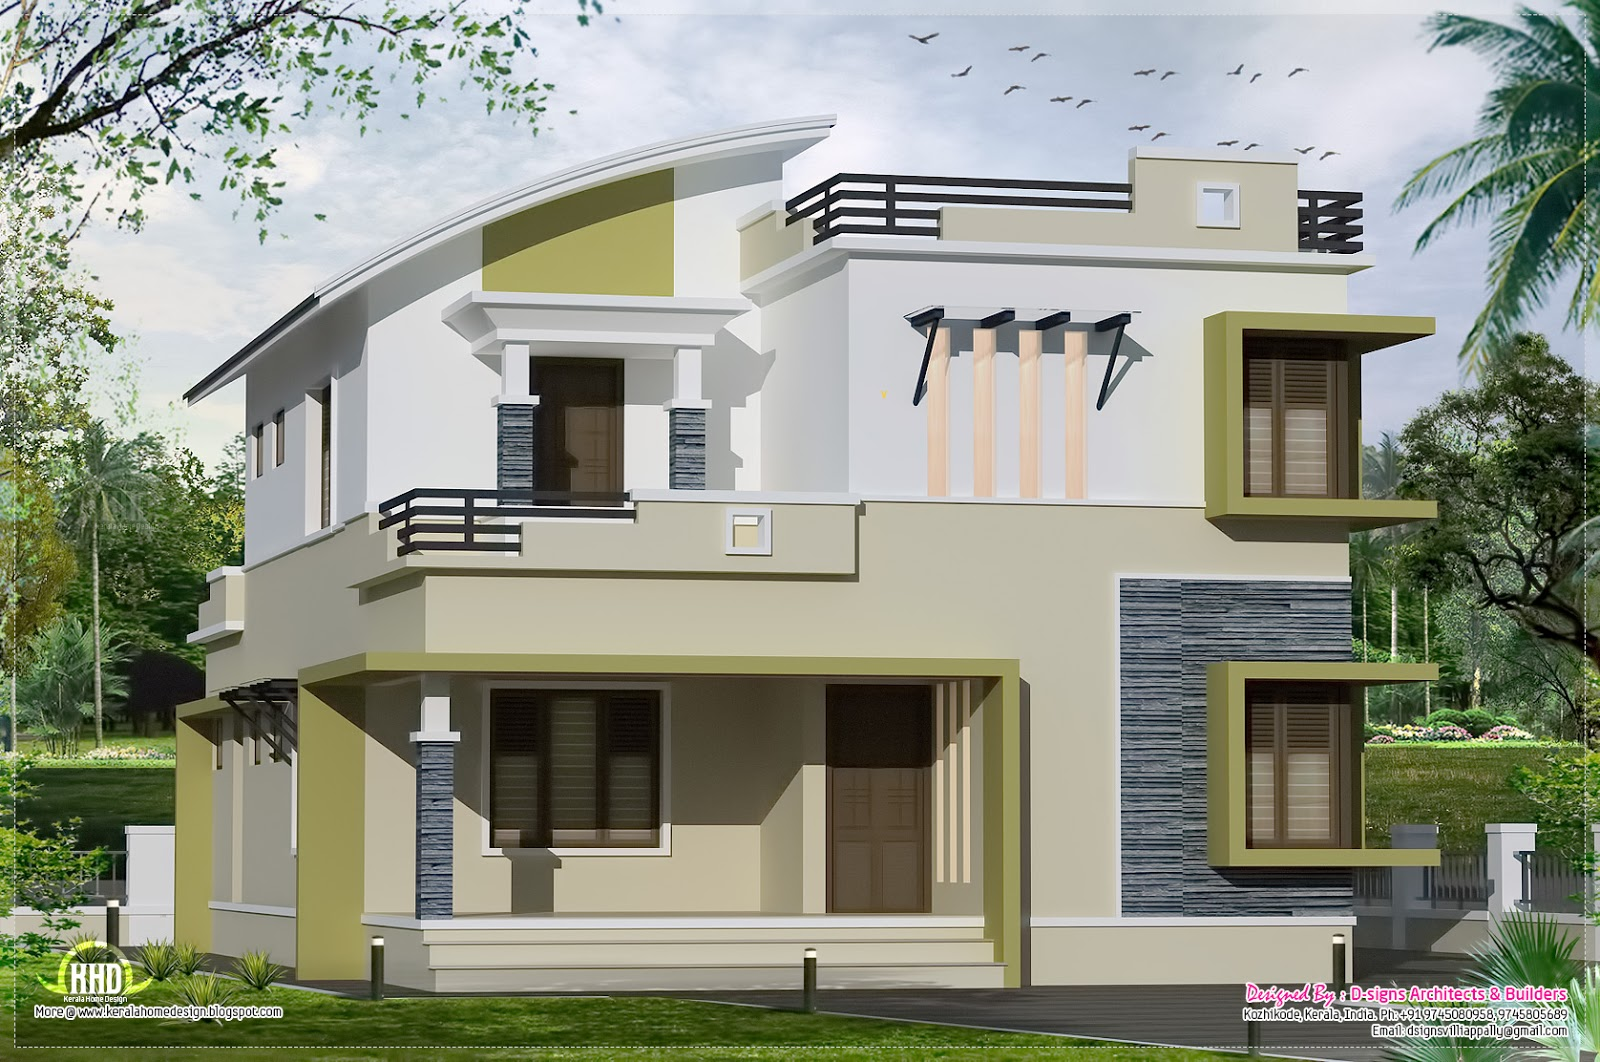 2400 Square Feet 2 Floor House Home Kerala Plans